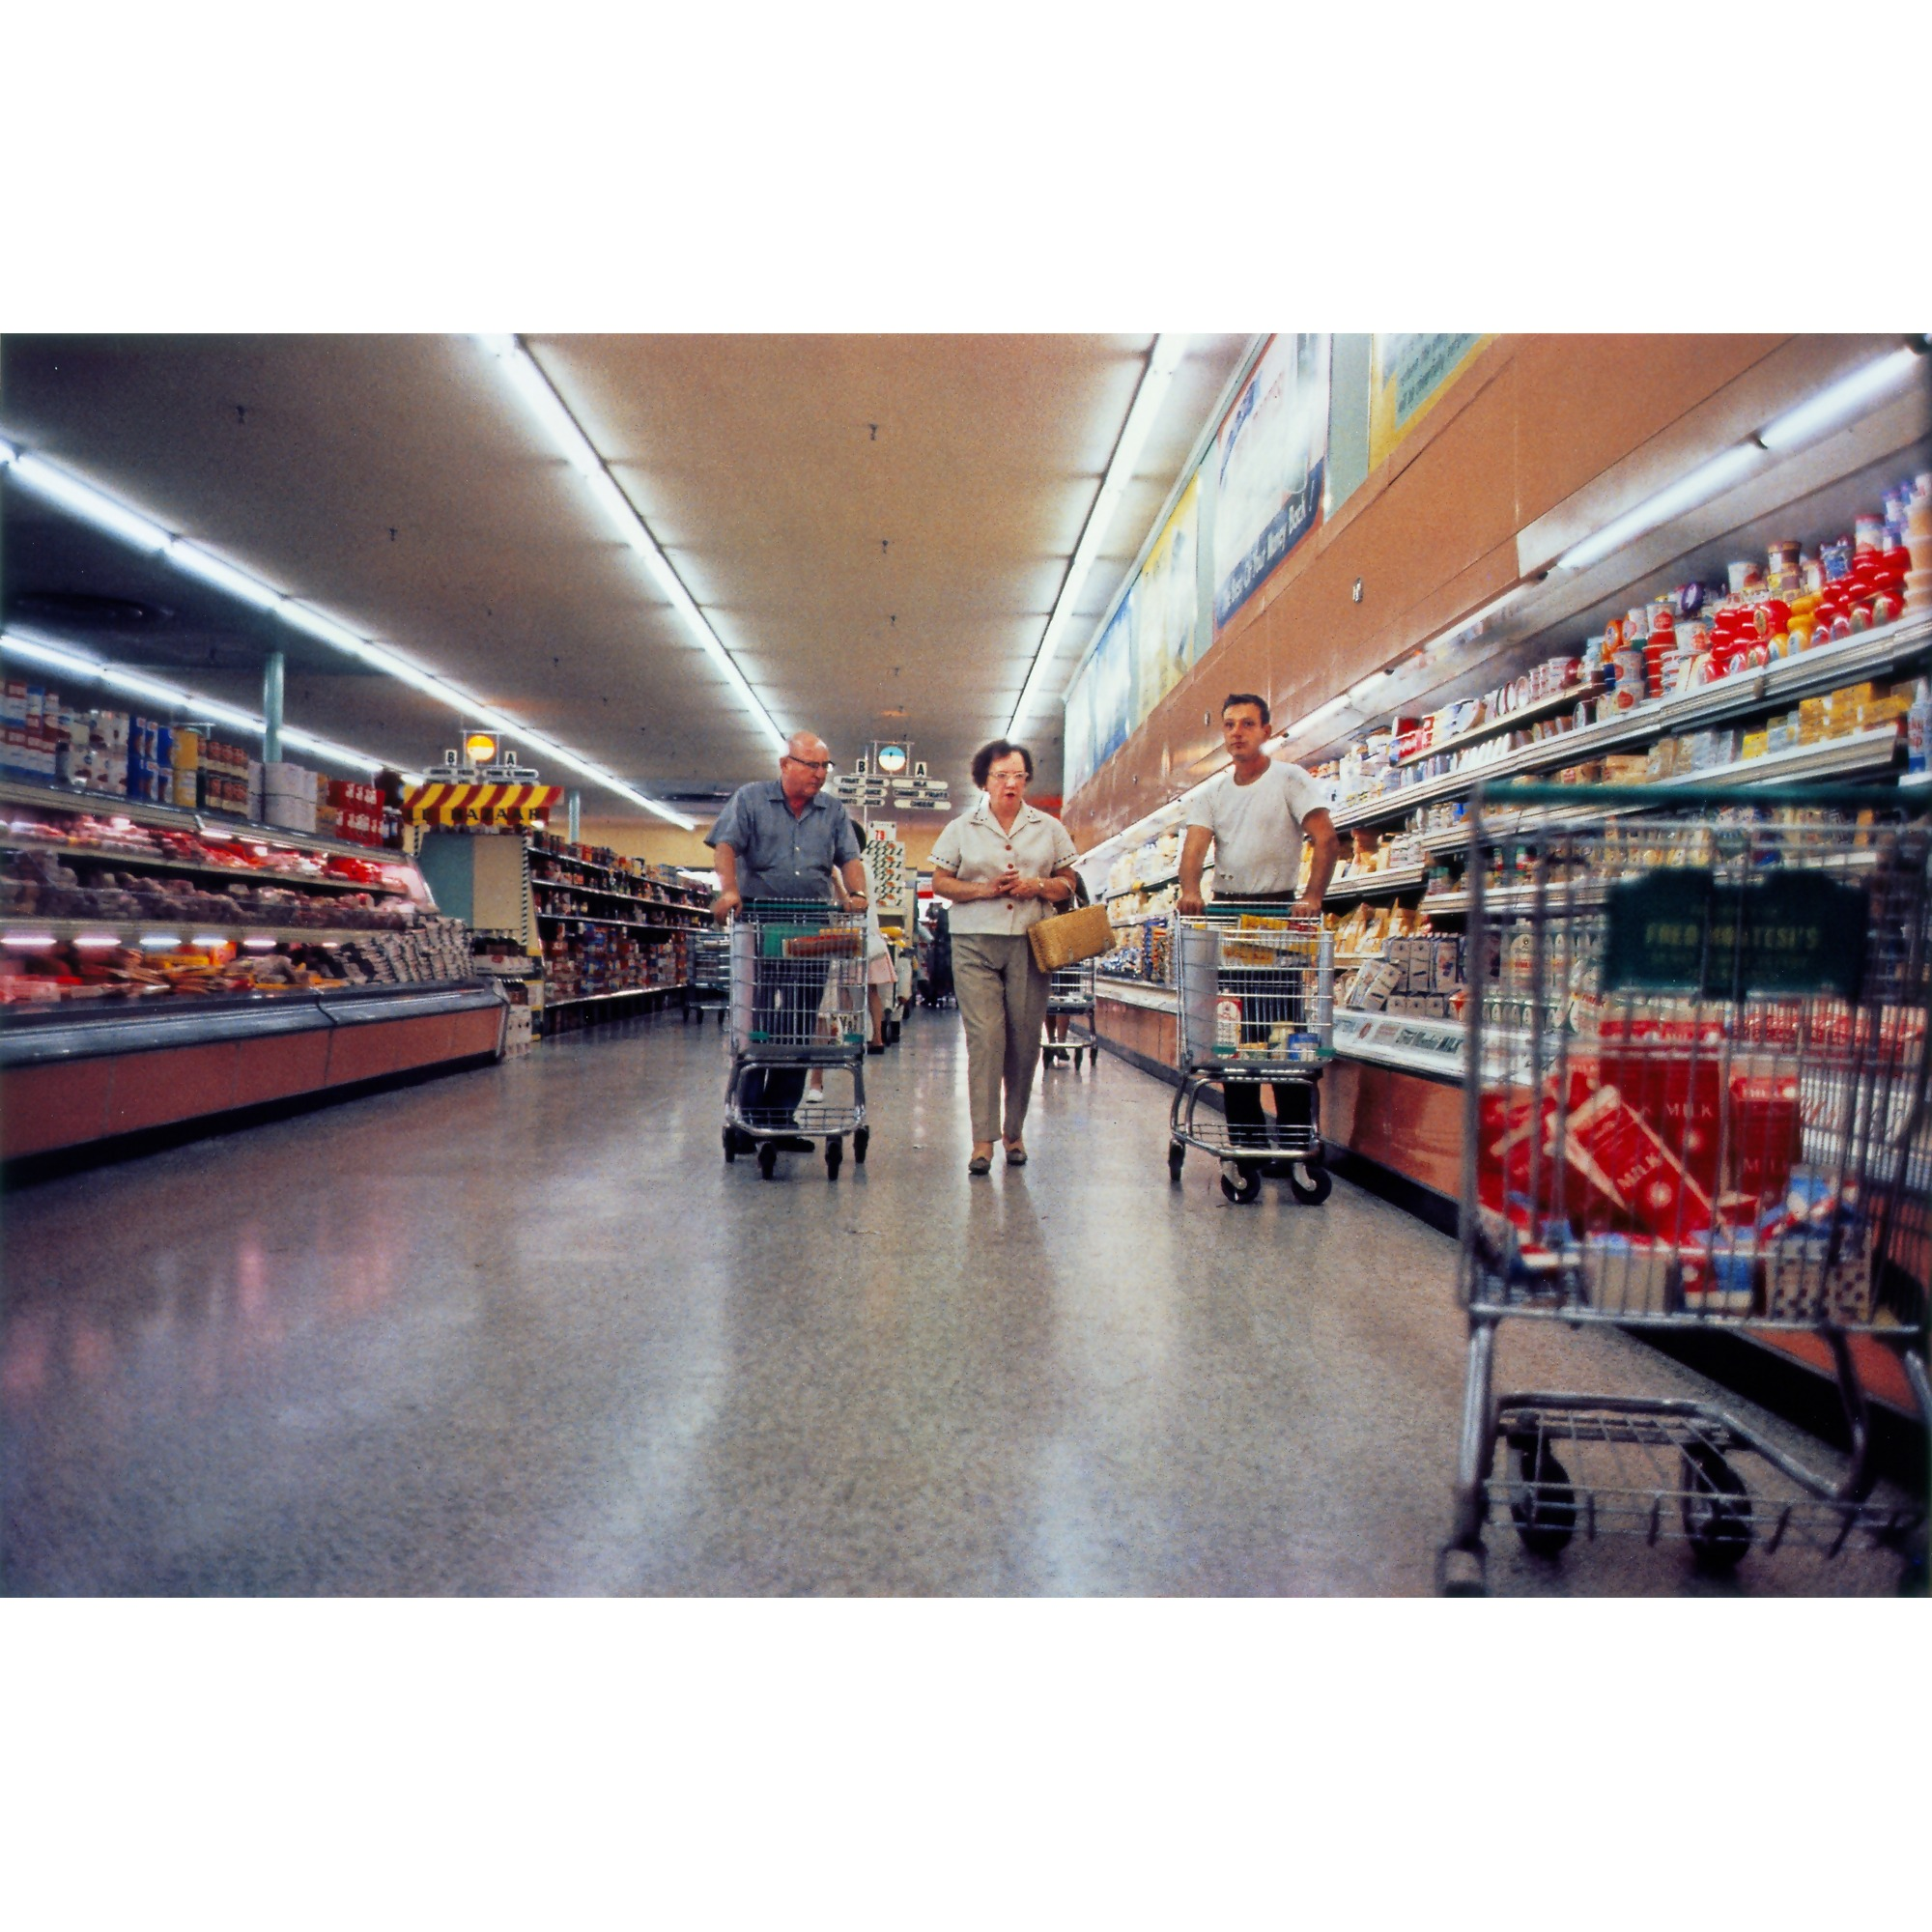 William Eggelston, untitled (grocery store) courtesy of Victoria Miro